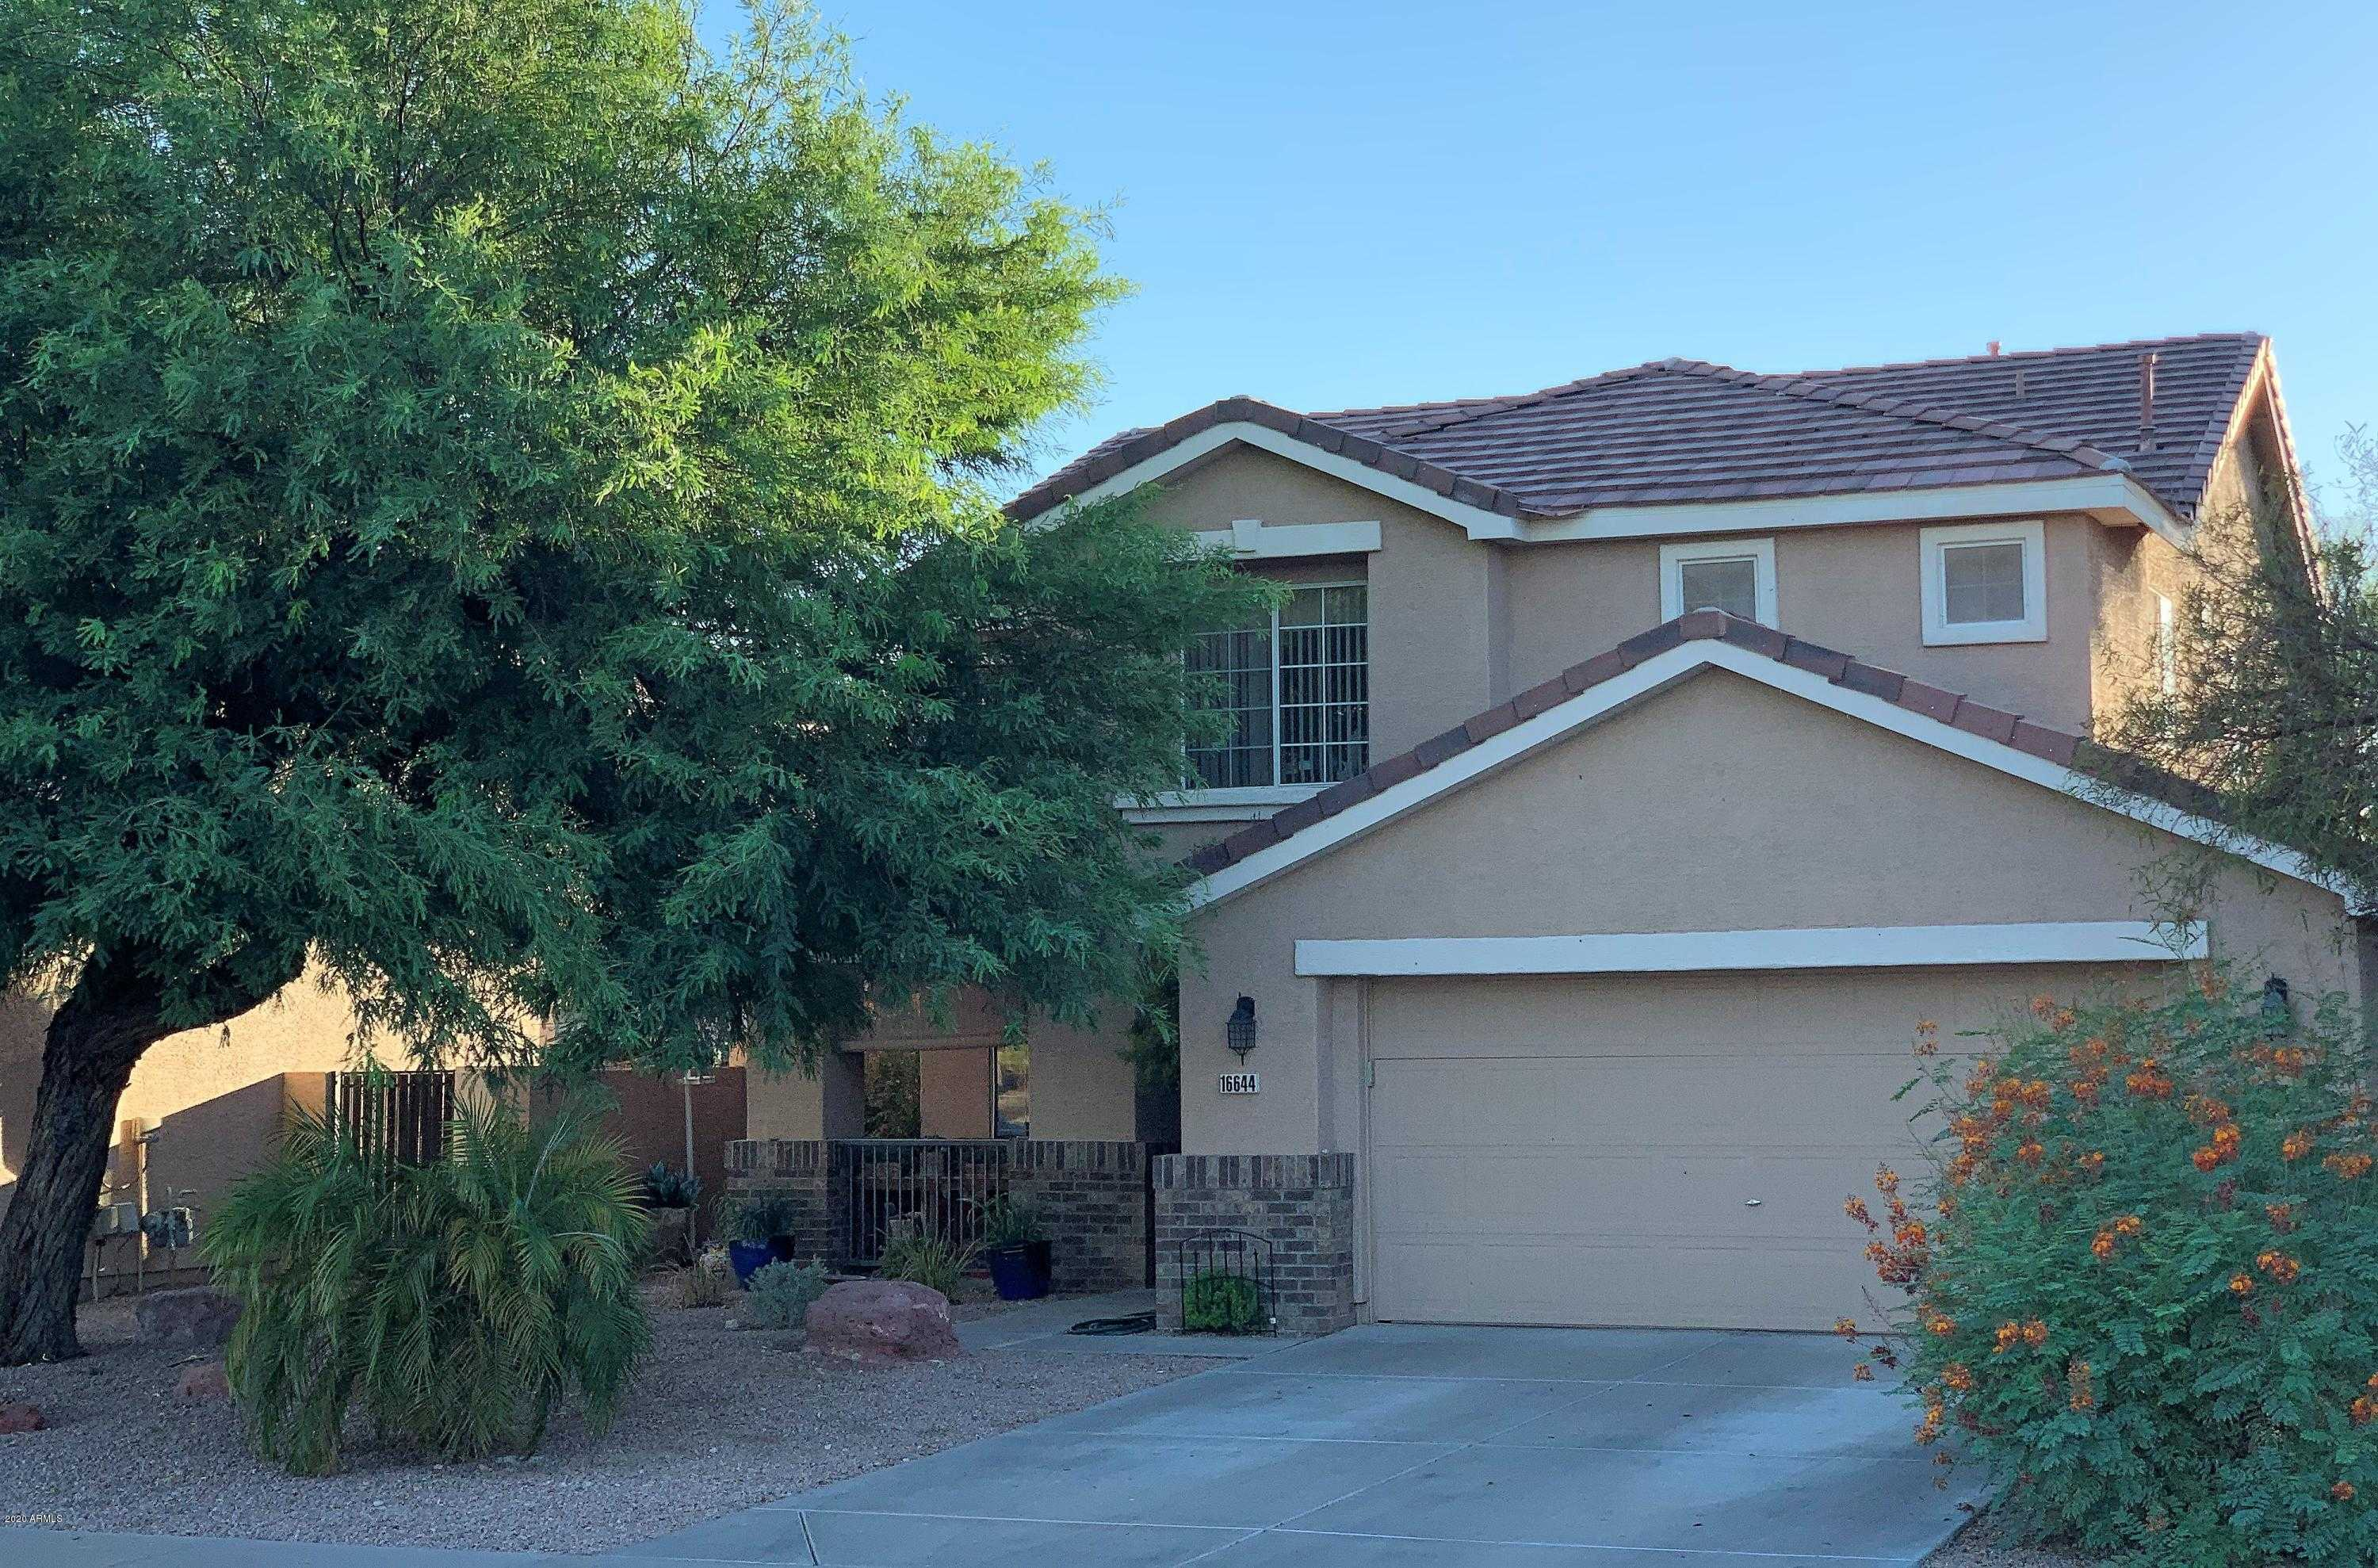 $389,500 - 3Br/3Ba - Home for Sale in Cays Pavilion, Phoenix